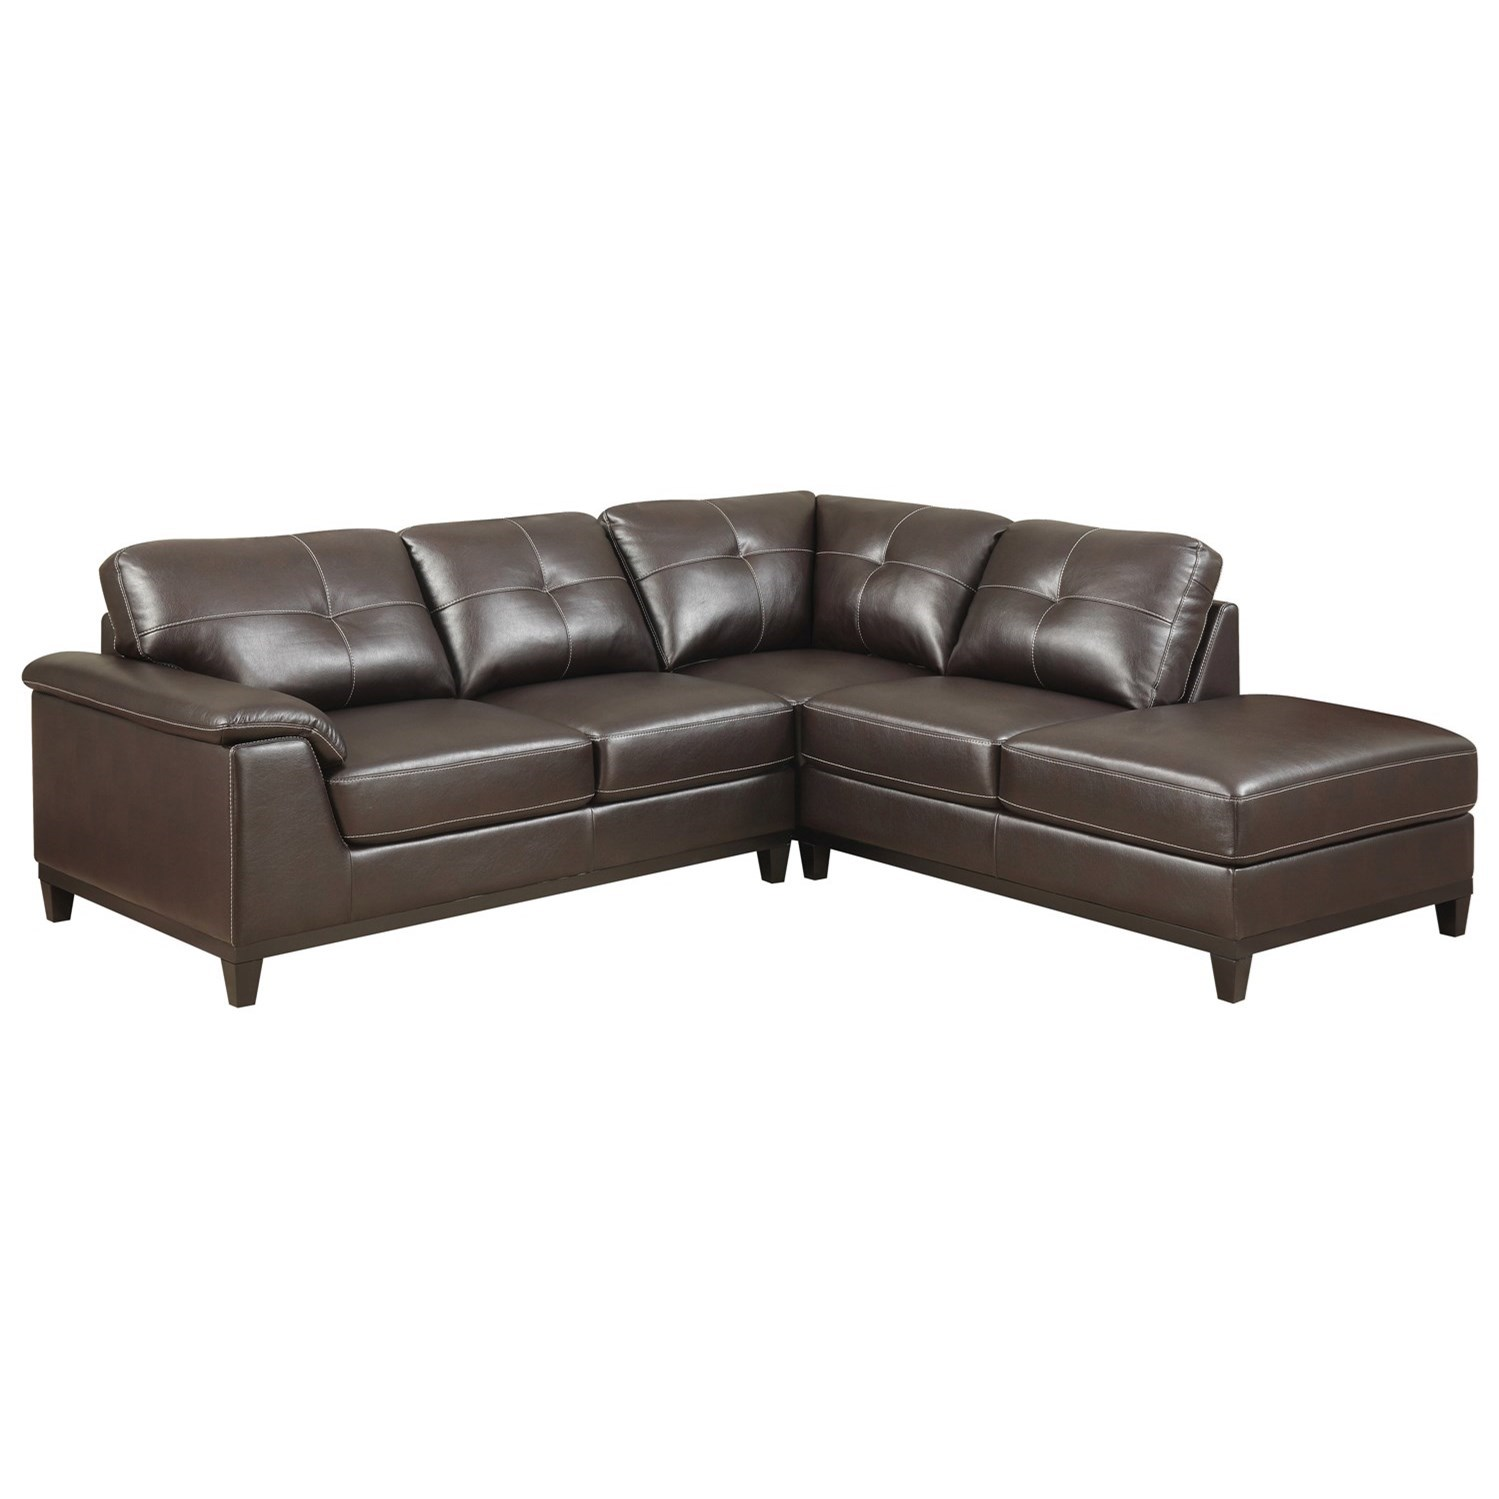 Emerald marquis 2 piece sectional set with tufting rife for Albany st germain sectional sofa chaise